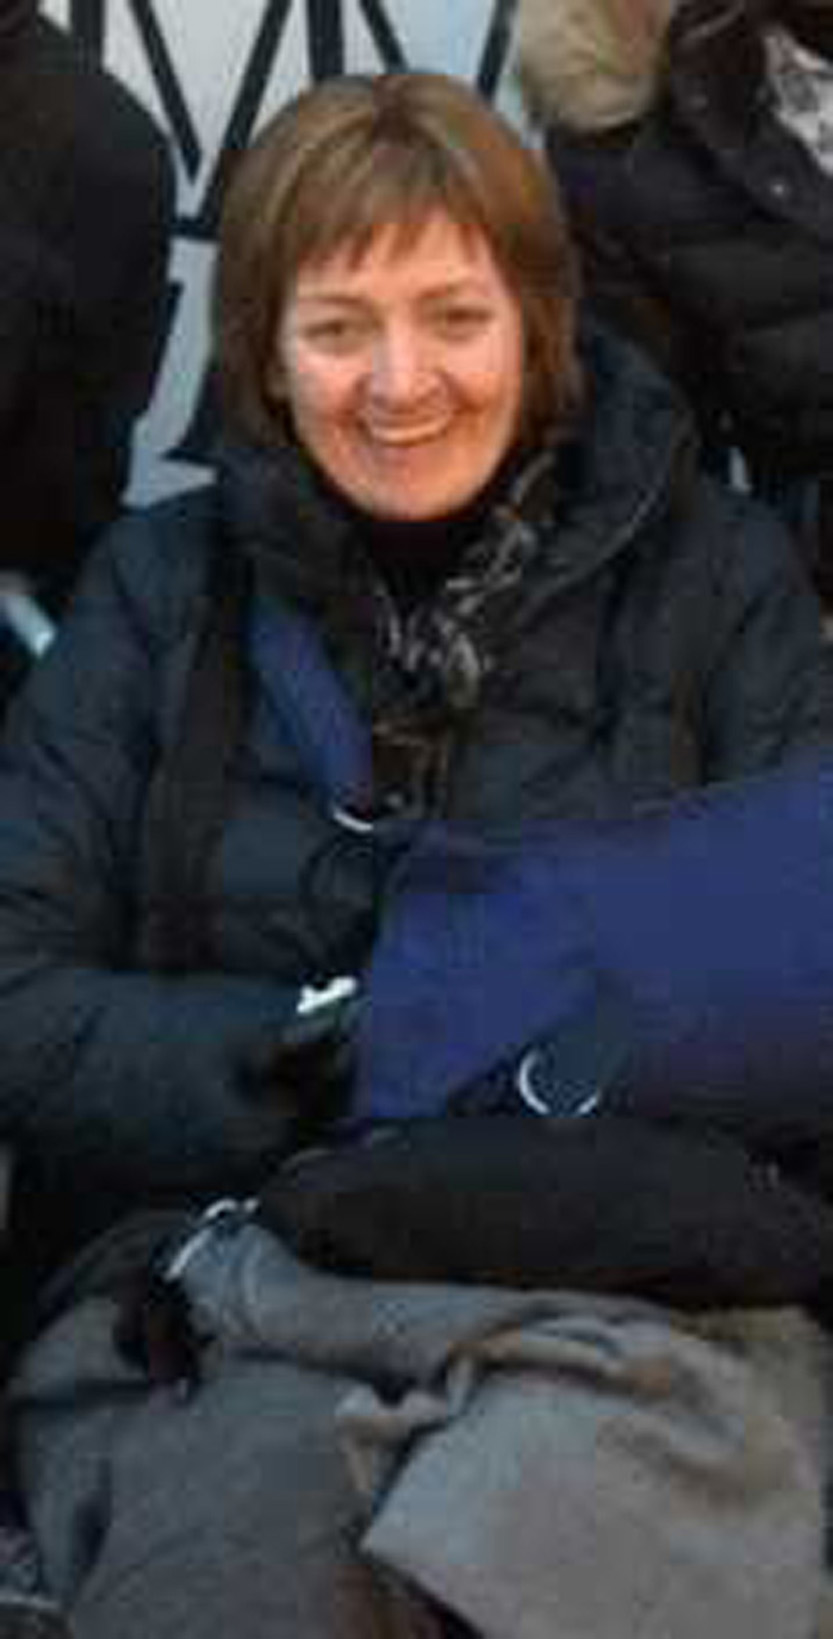 Anne O'Neill (51) was found dead in the back garden of a Finaghy house